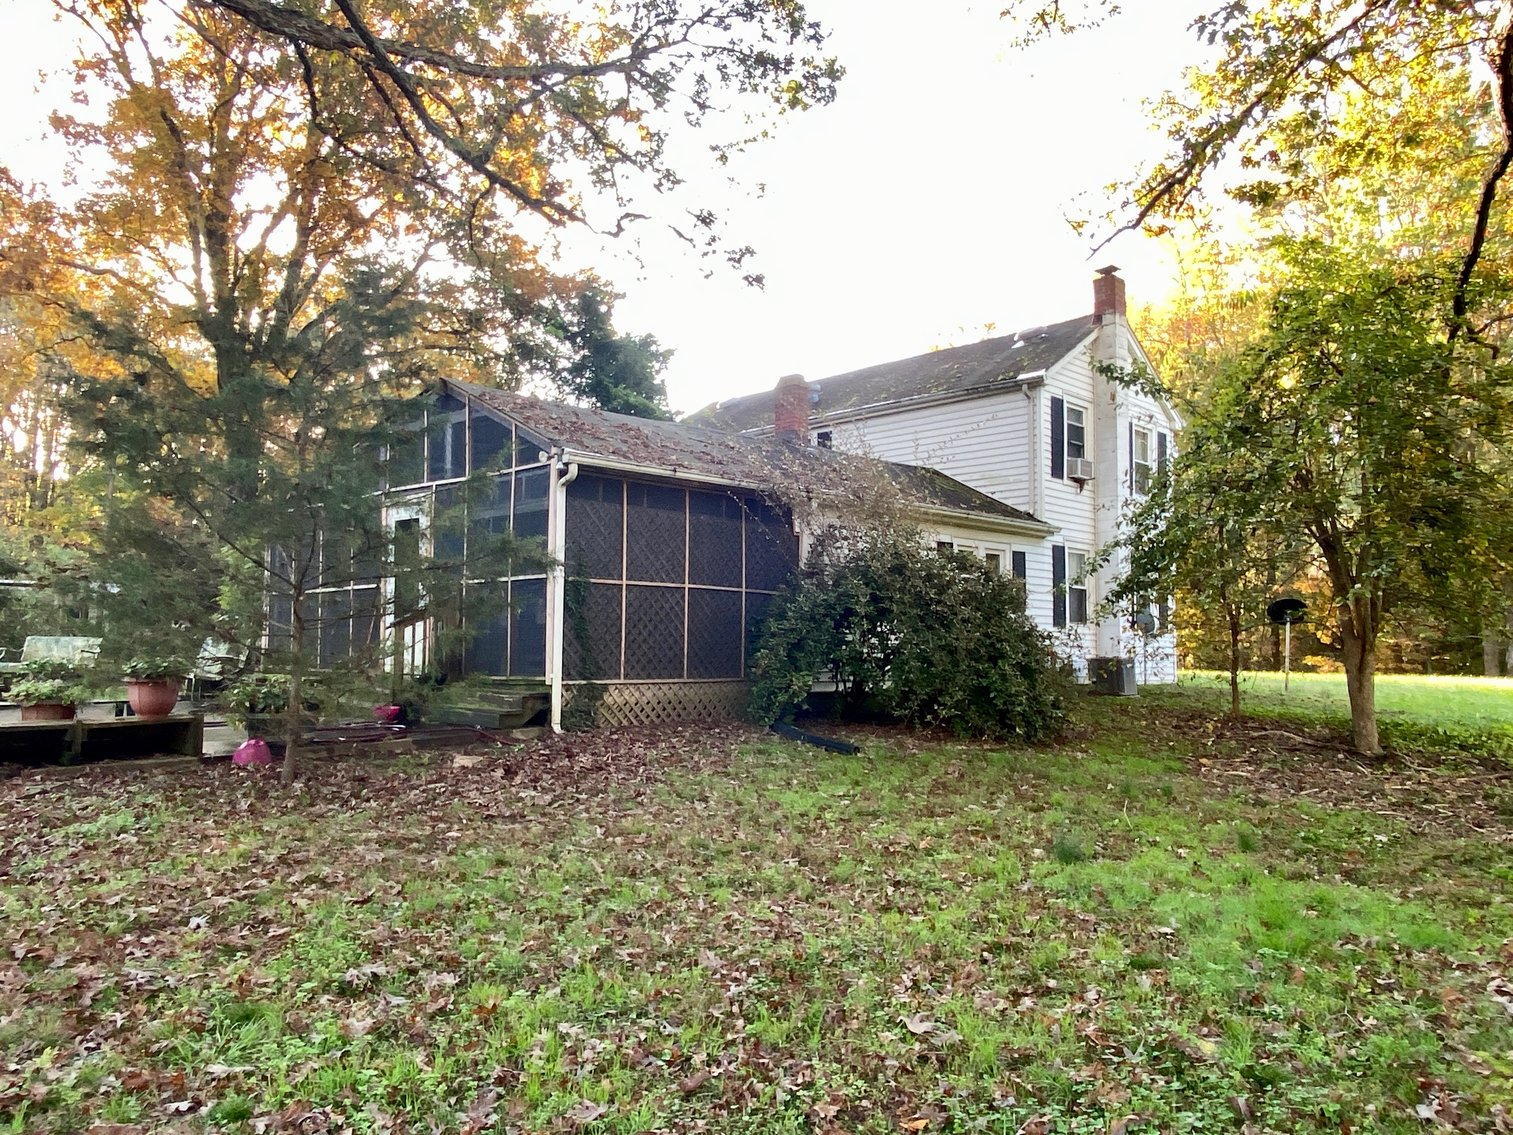 Image for 55.16 +/- Acres of Desirable Land Fronting Smith Station Rd. w/3 BR Home & Outbuildings in Spotsylvania County, VA--SELLING to the HIGHEST BIDDER!!